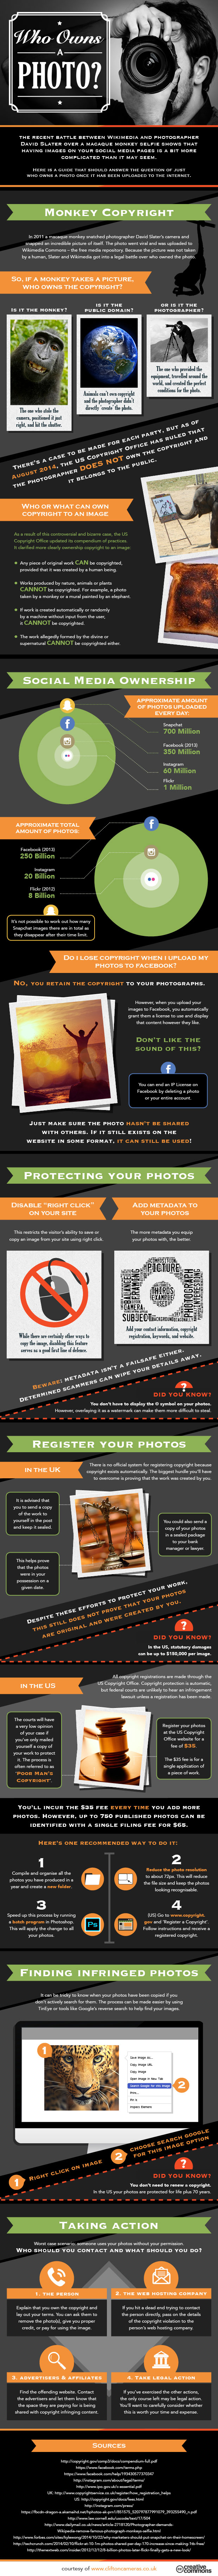 Who has the Photo Copyright and Ownership [Infographic]